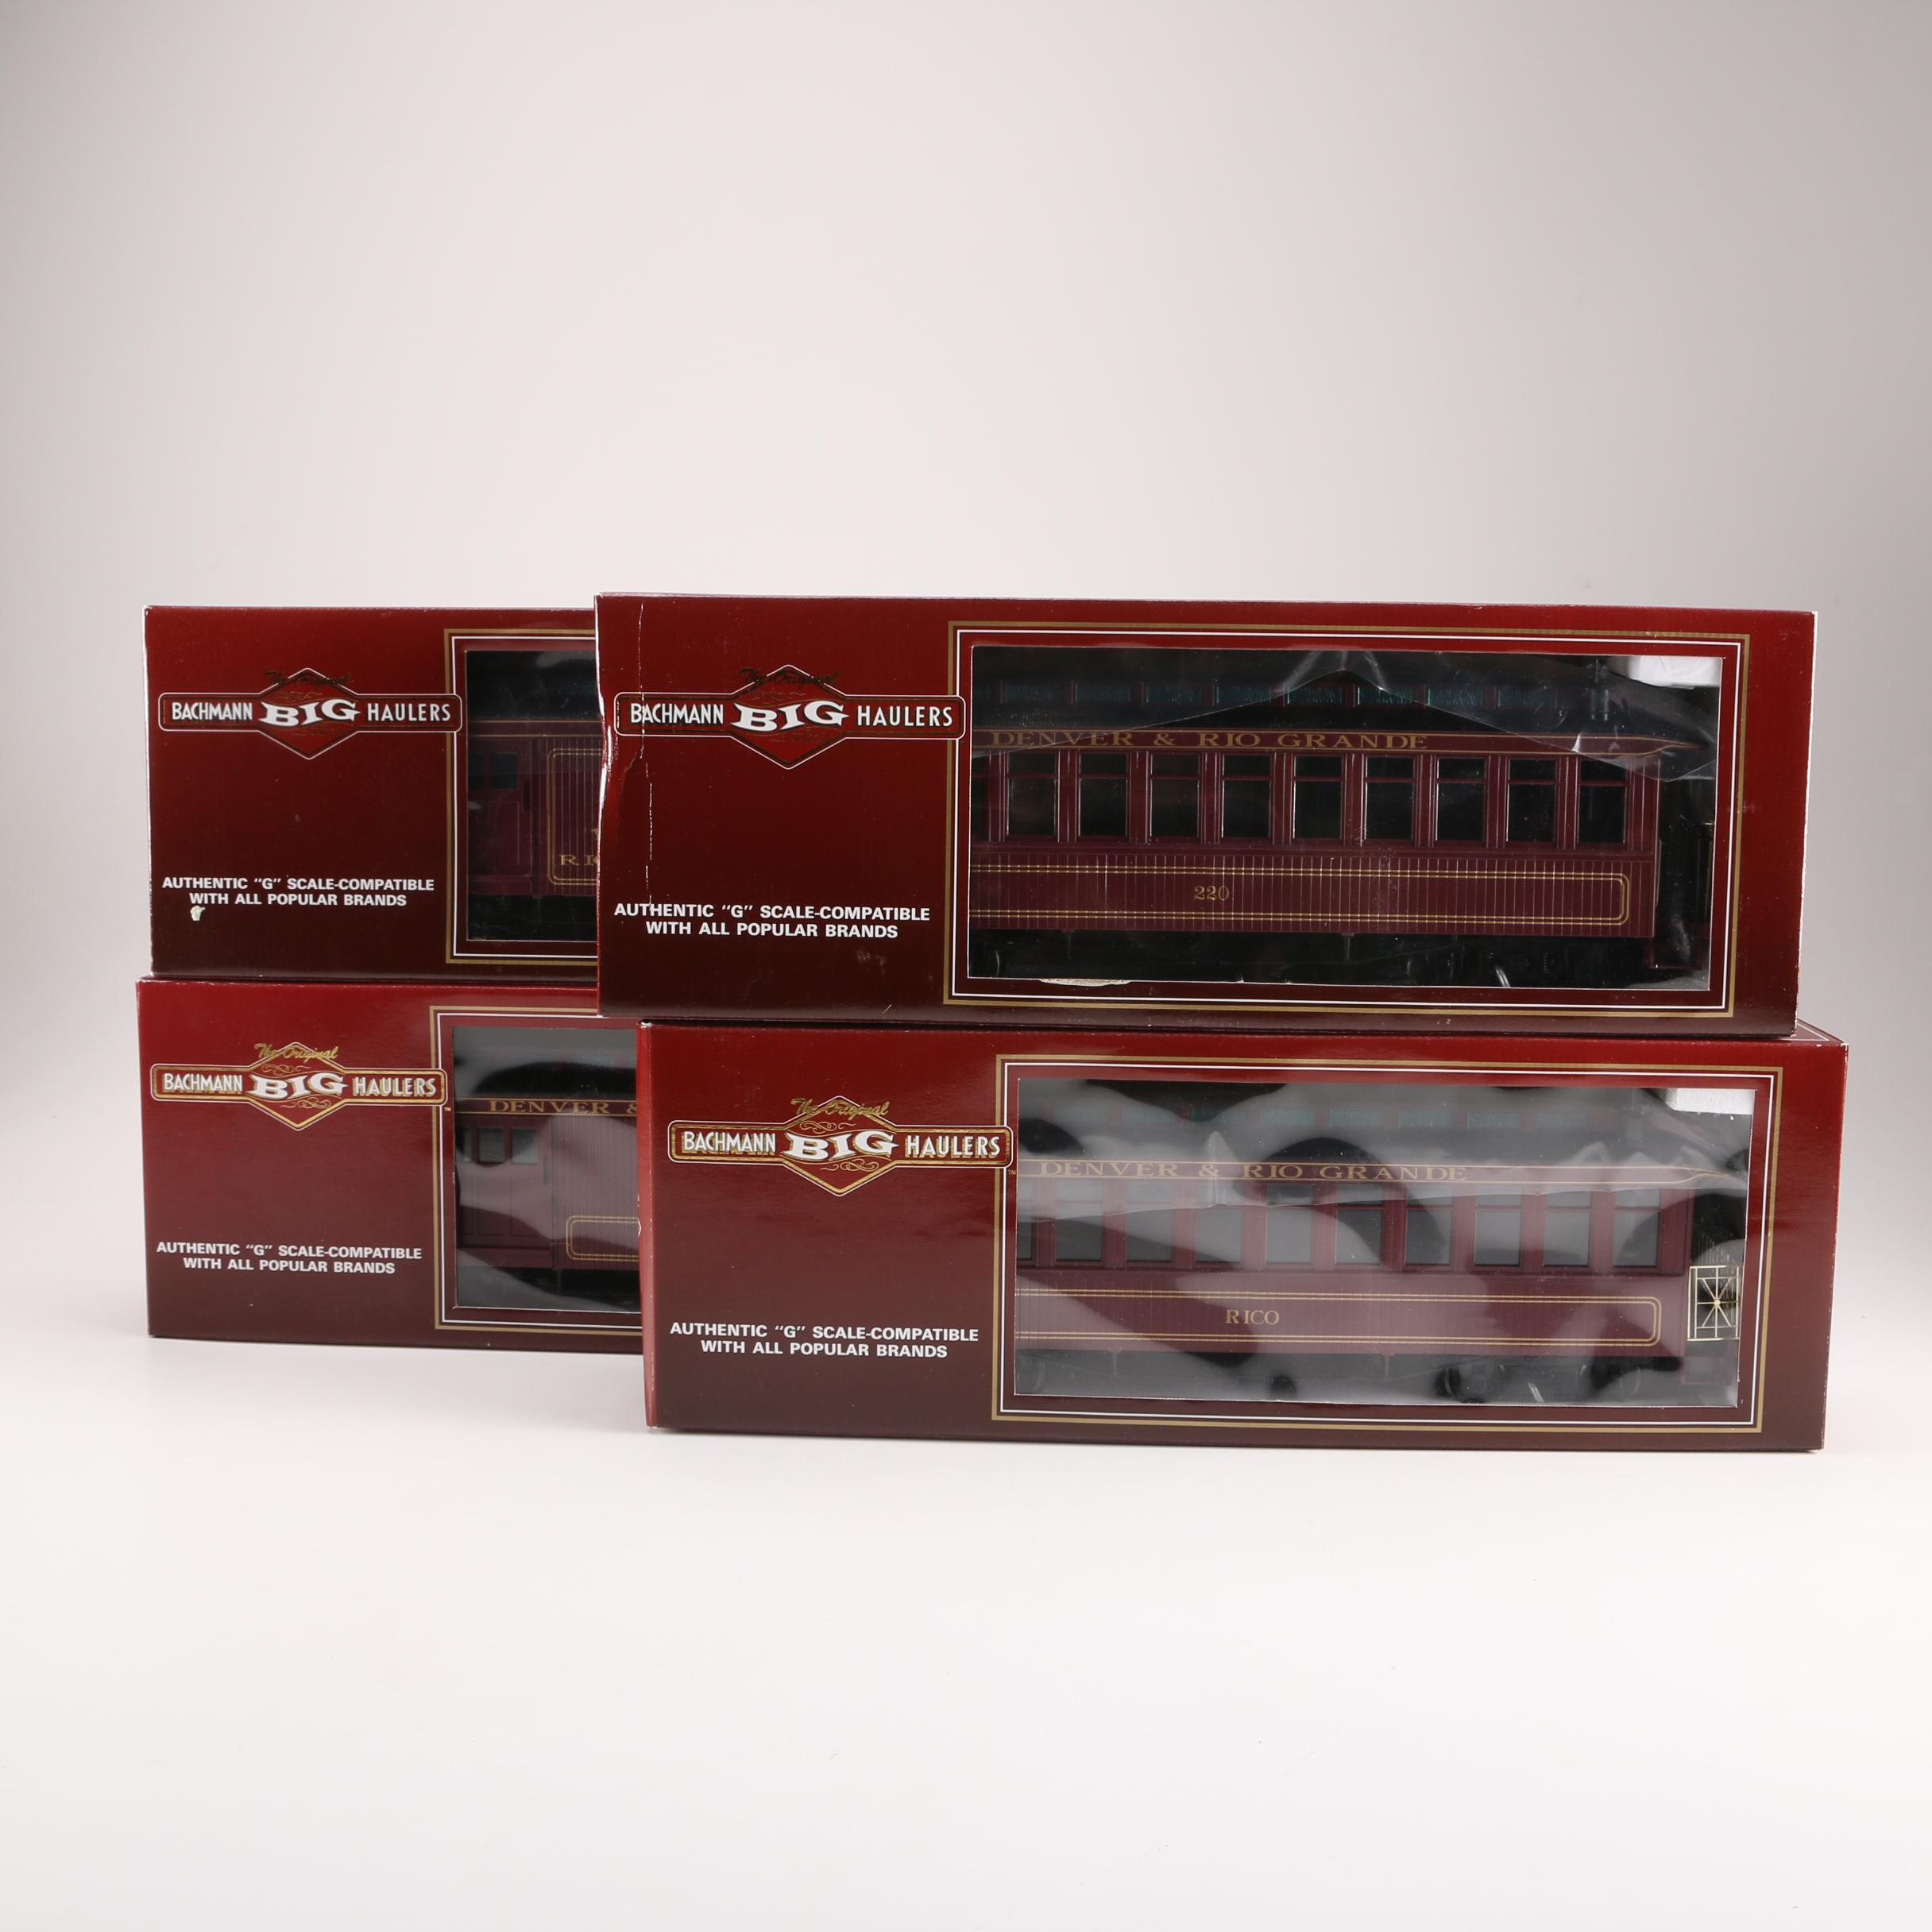 Bachmann Big Haulers G Scale Trains Featuring Denver & Rio Grande